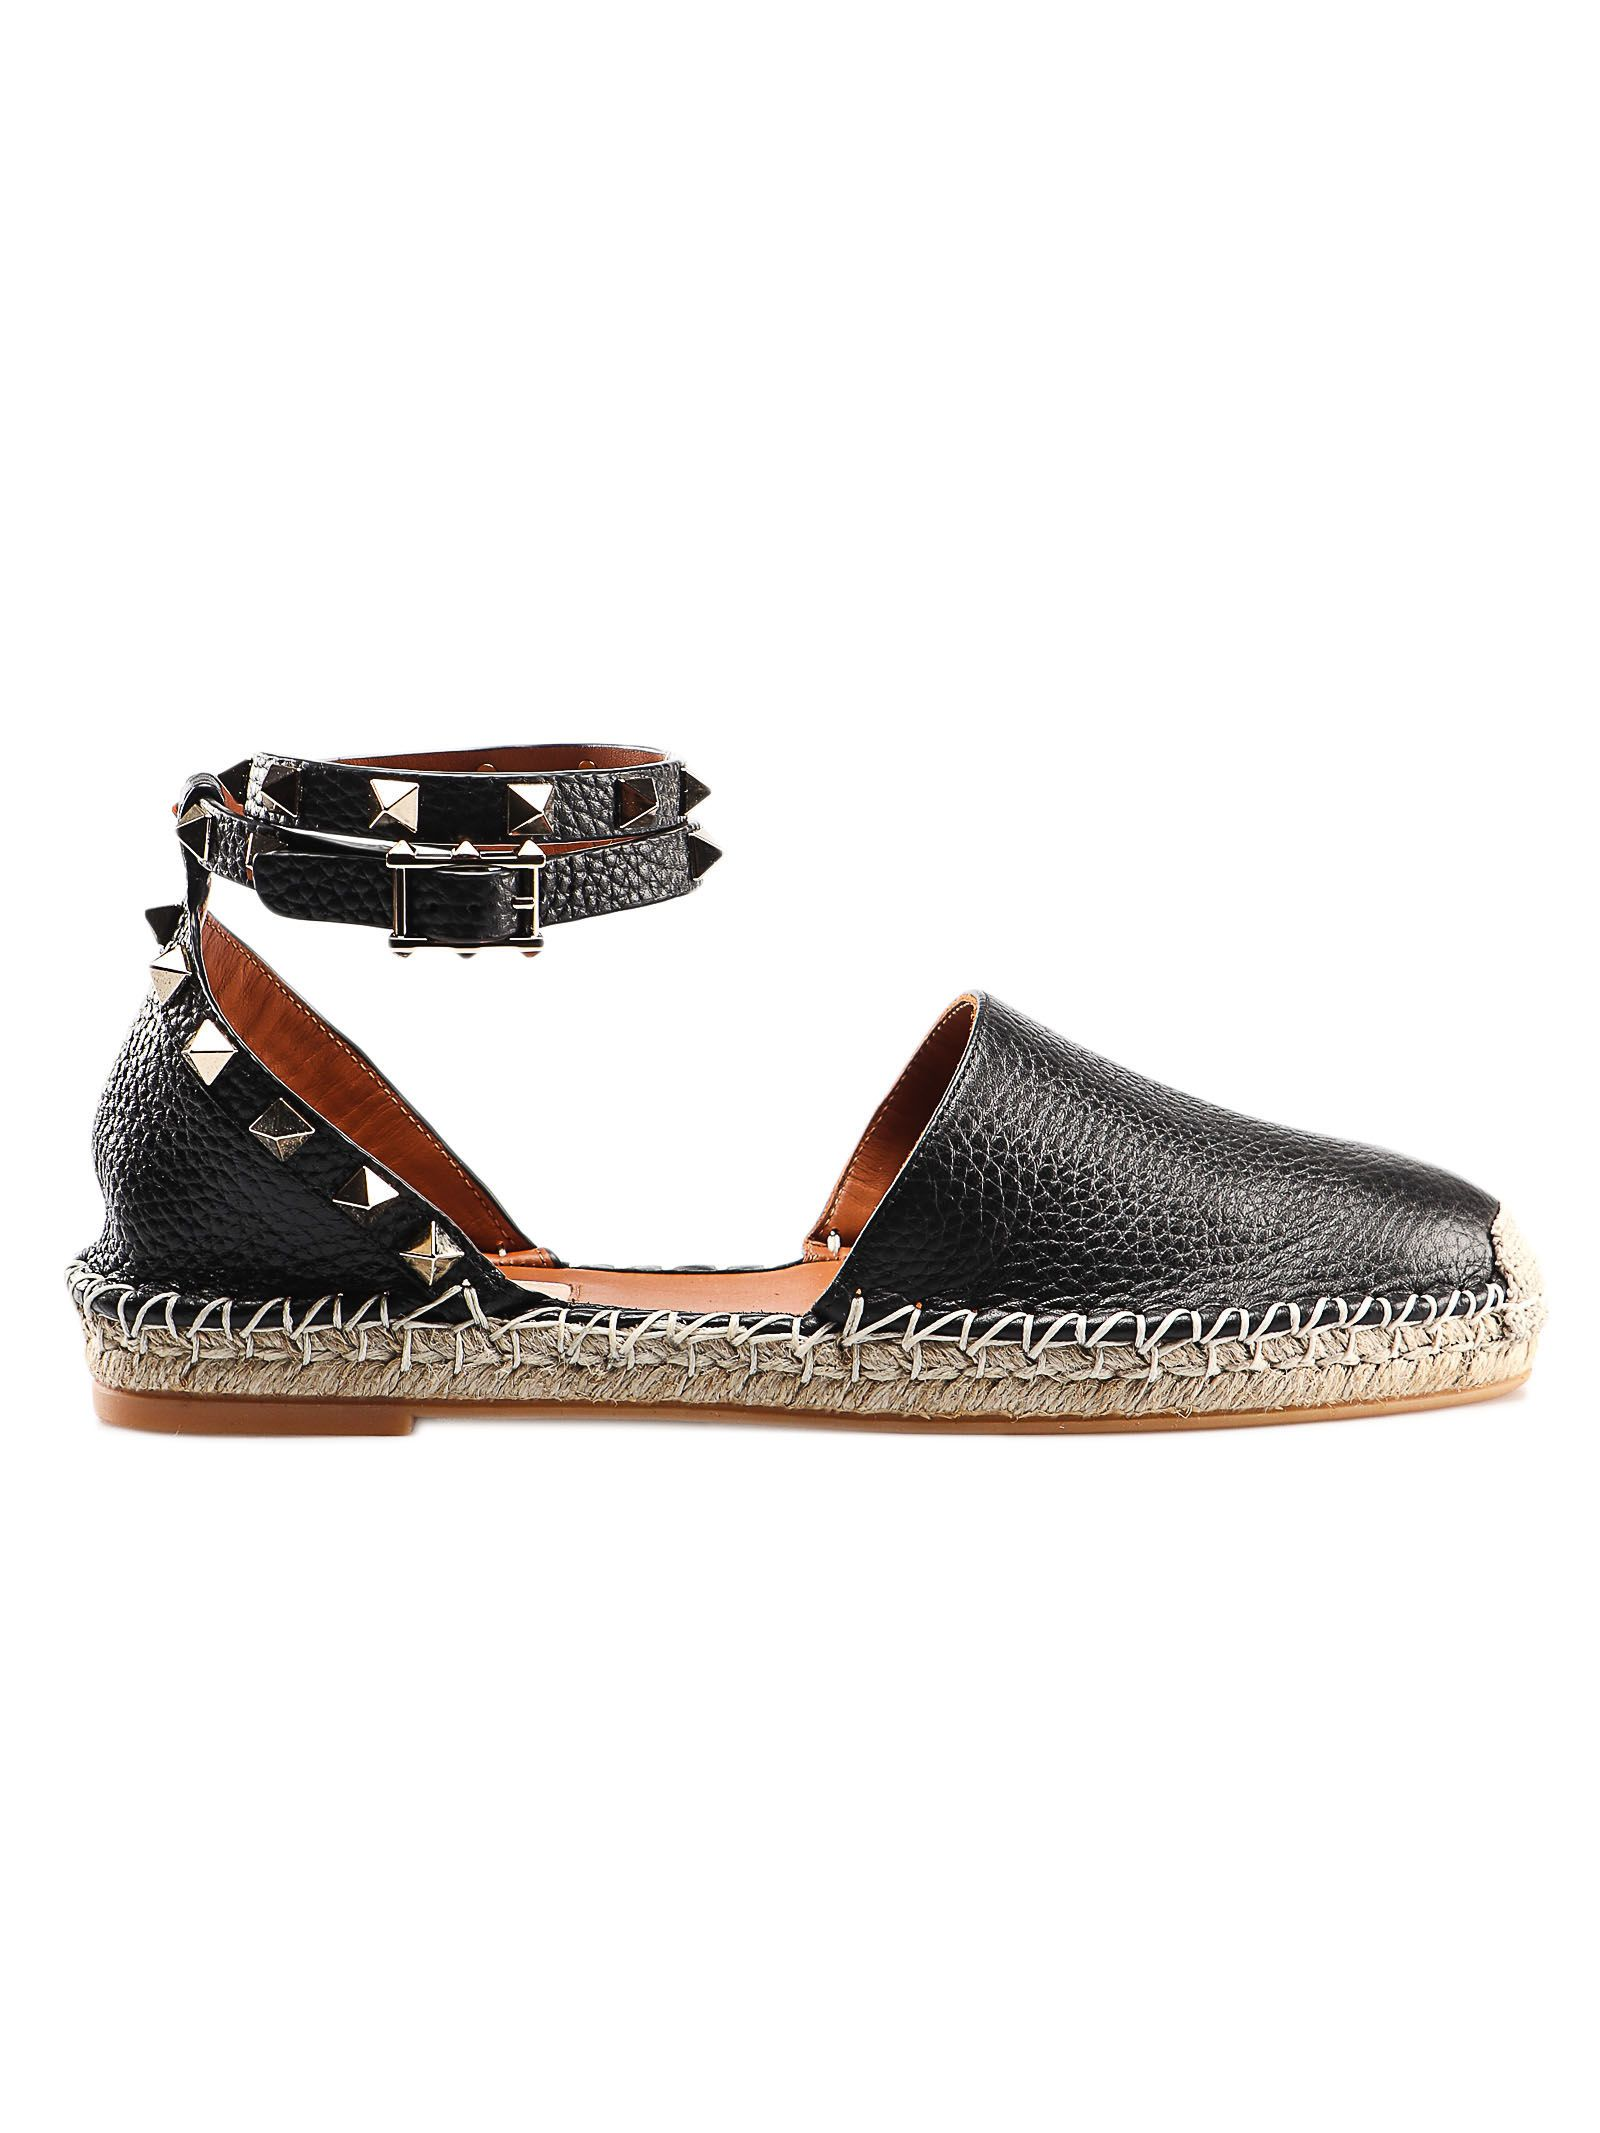 75b5cabd3f6 Browse 5270 Flats For Women | Marie Claire Edit